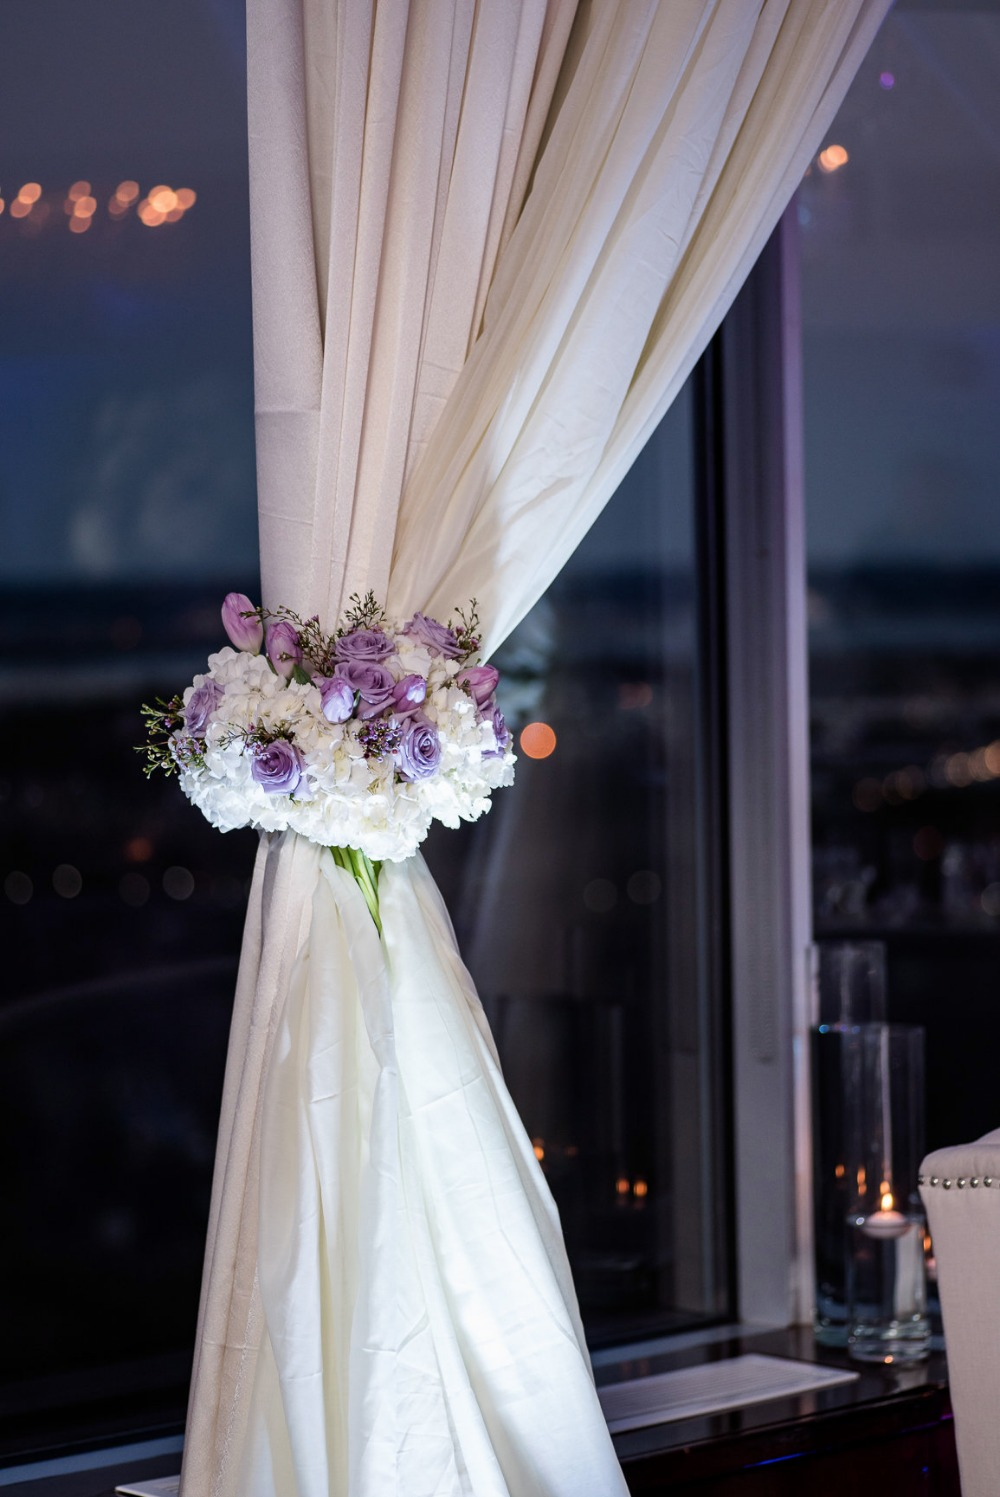 Gallery - A Heartfelt Purple and Silver Wedding That Might Make You Cry